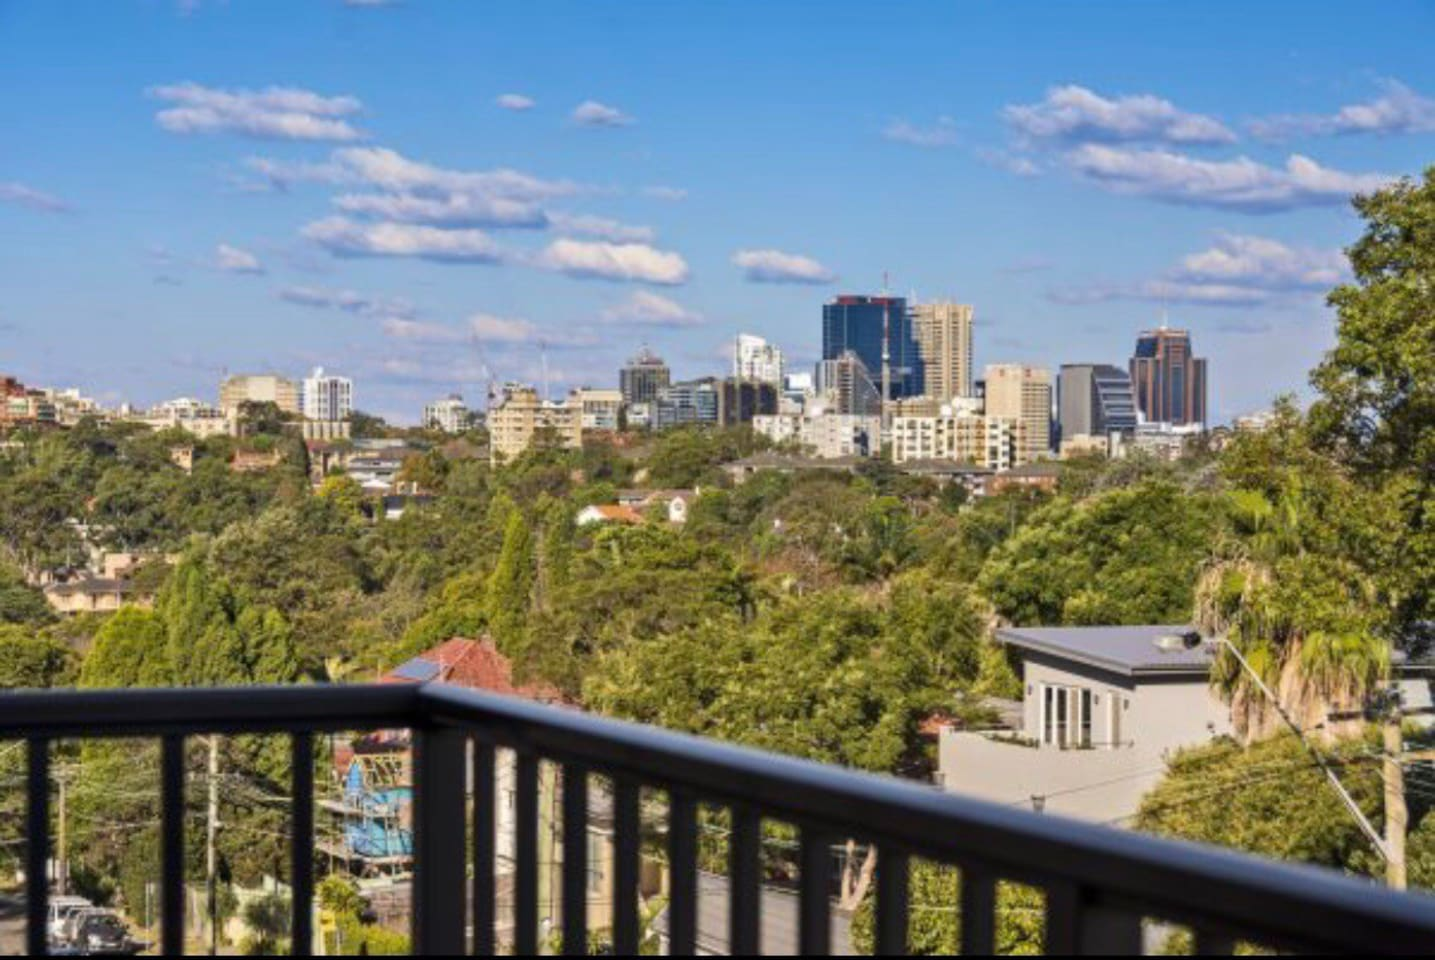 Stay close to the city CBD, near great transport connections, easy access to the Northern Beaches, as well as enjoying North Shore's nature and within walking distance to Sydney river.